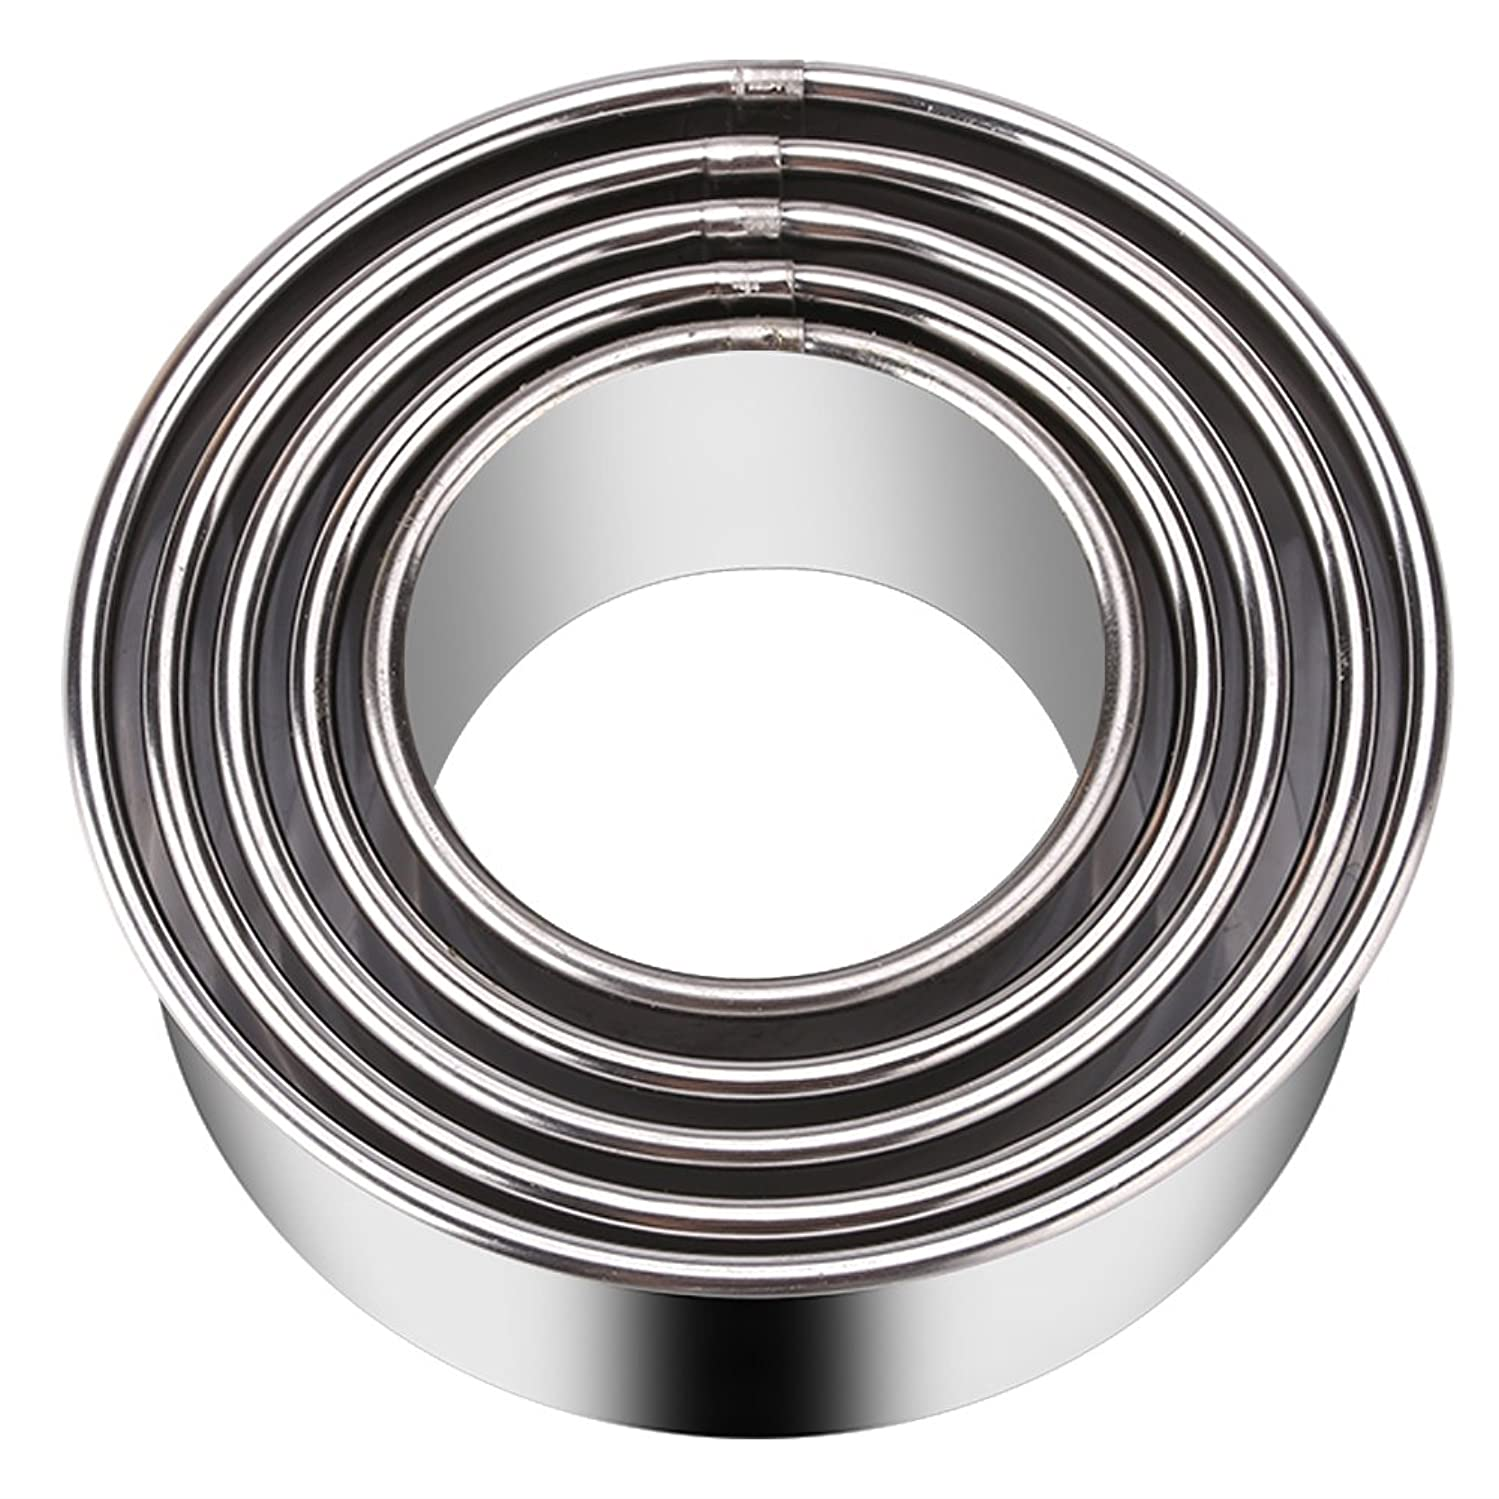 KSPOWWIN 5 Pieces Stainless Steel Cookie Cutters Biscuit Plain Edge Round Cutters in Graduated Sizes Shape Molds